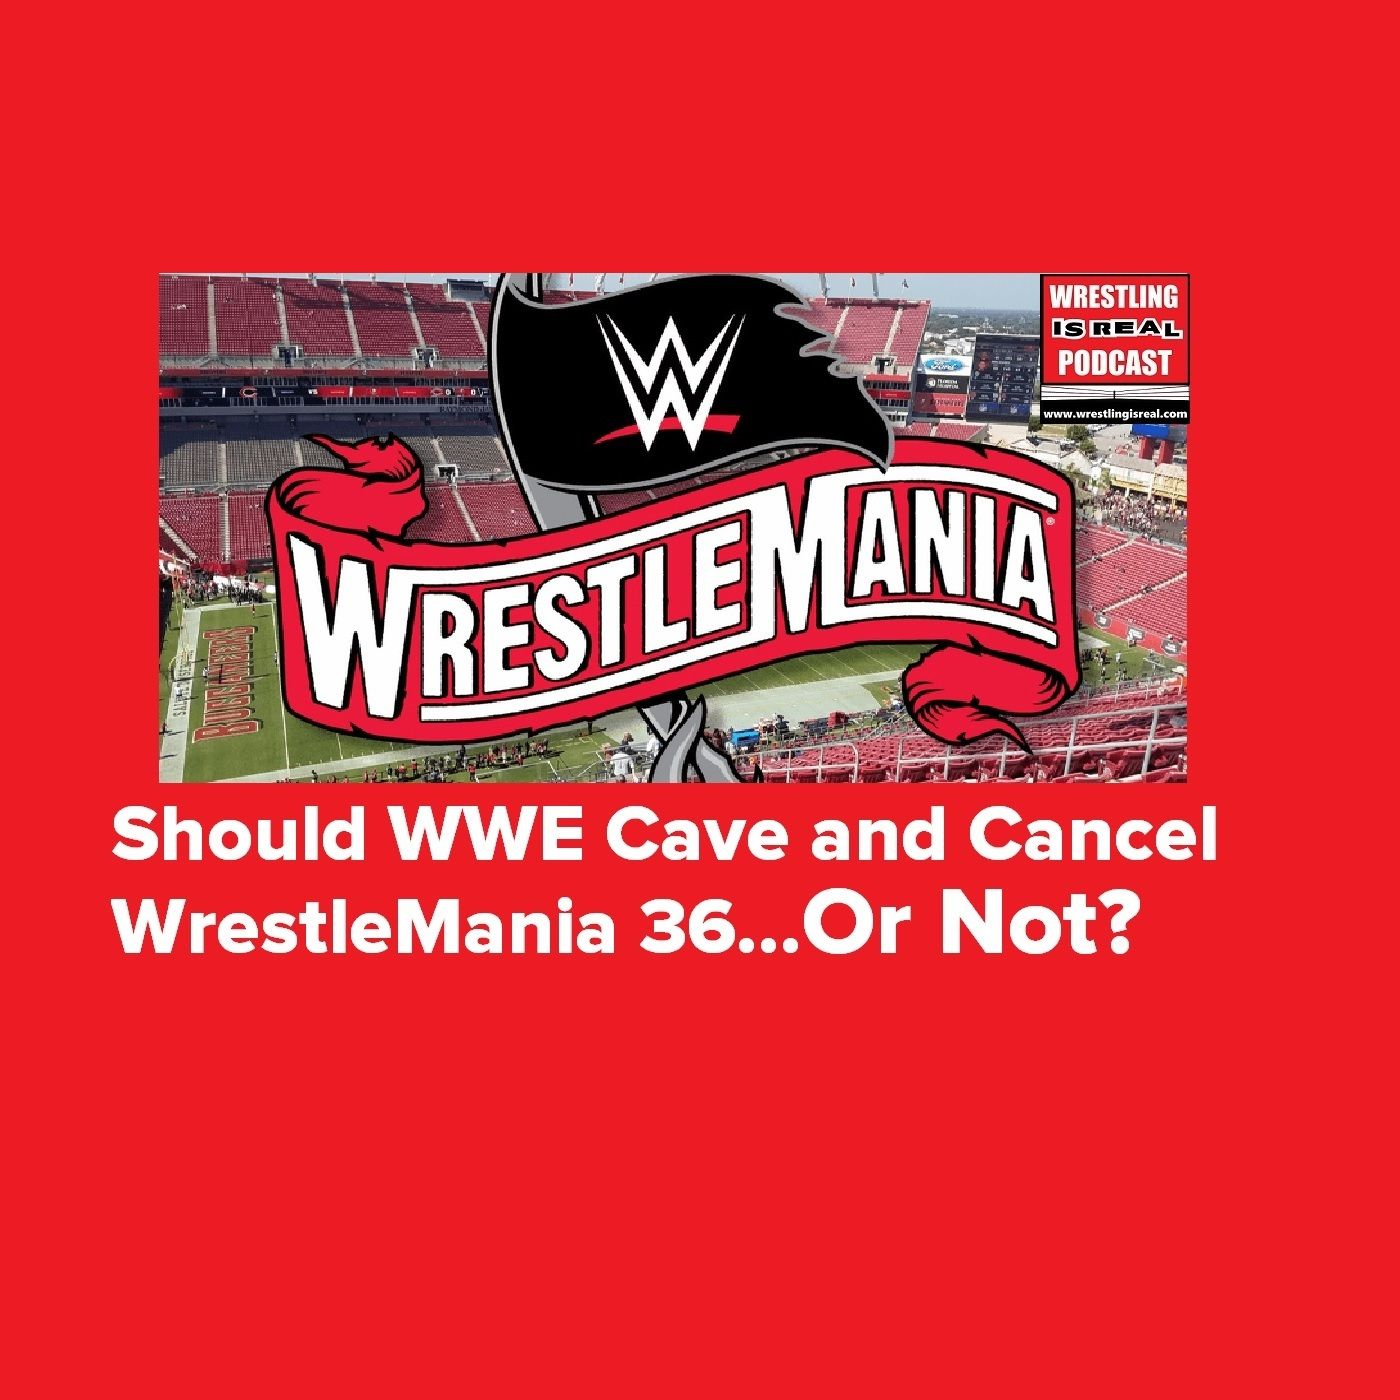 Should WWE Cave and Cancel WrestleMania 36... Or Not? KOP031220-521